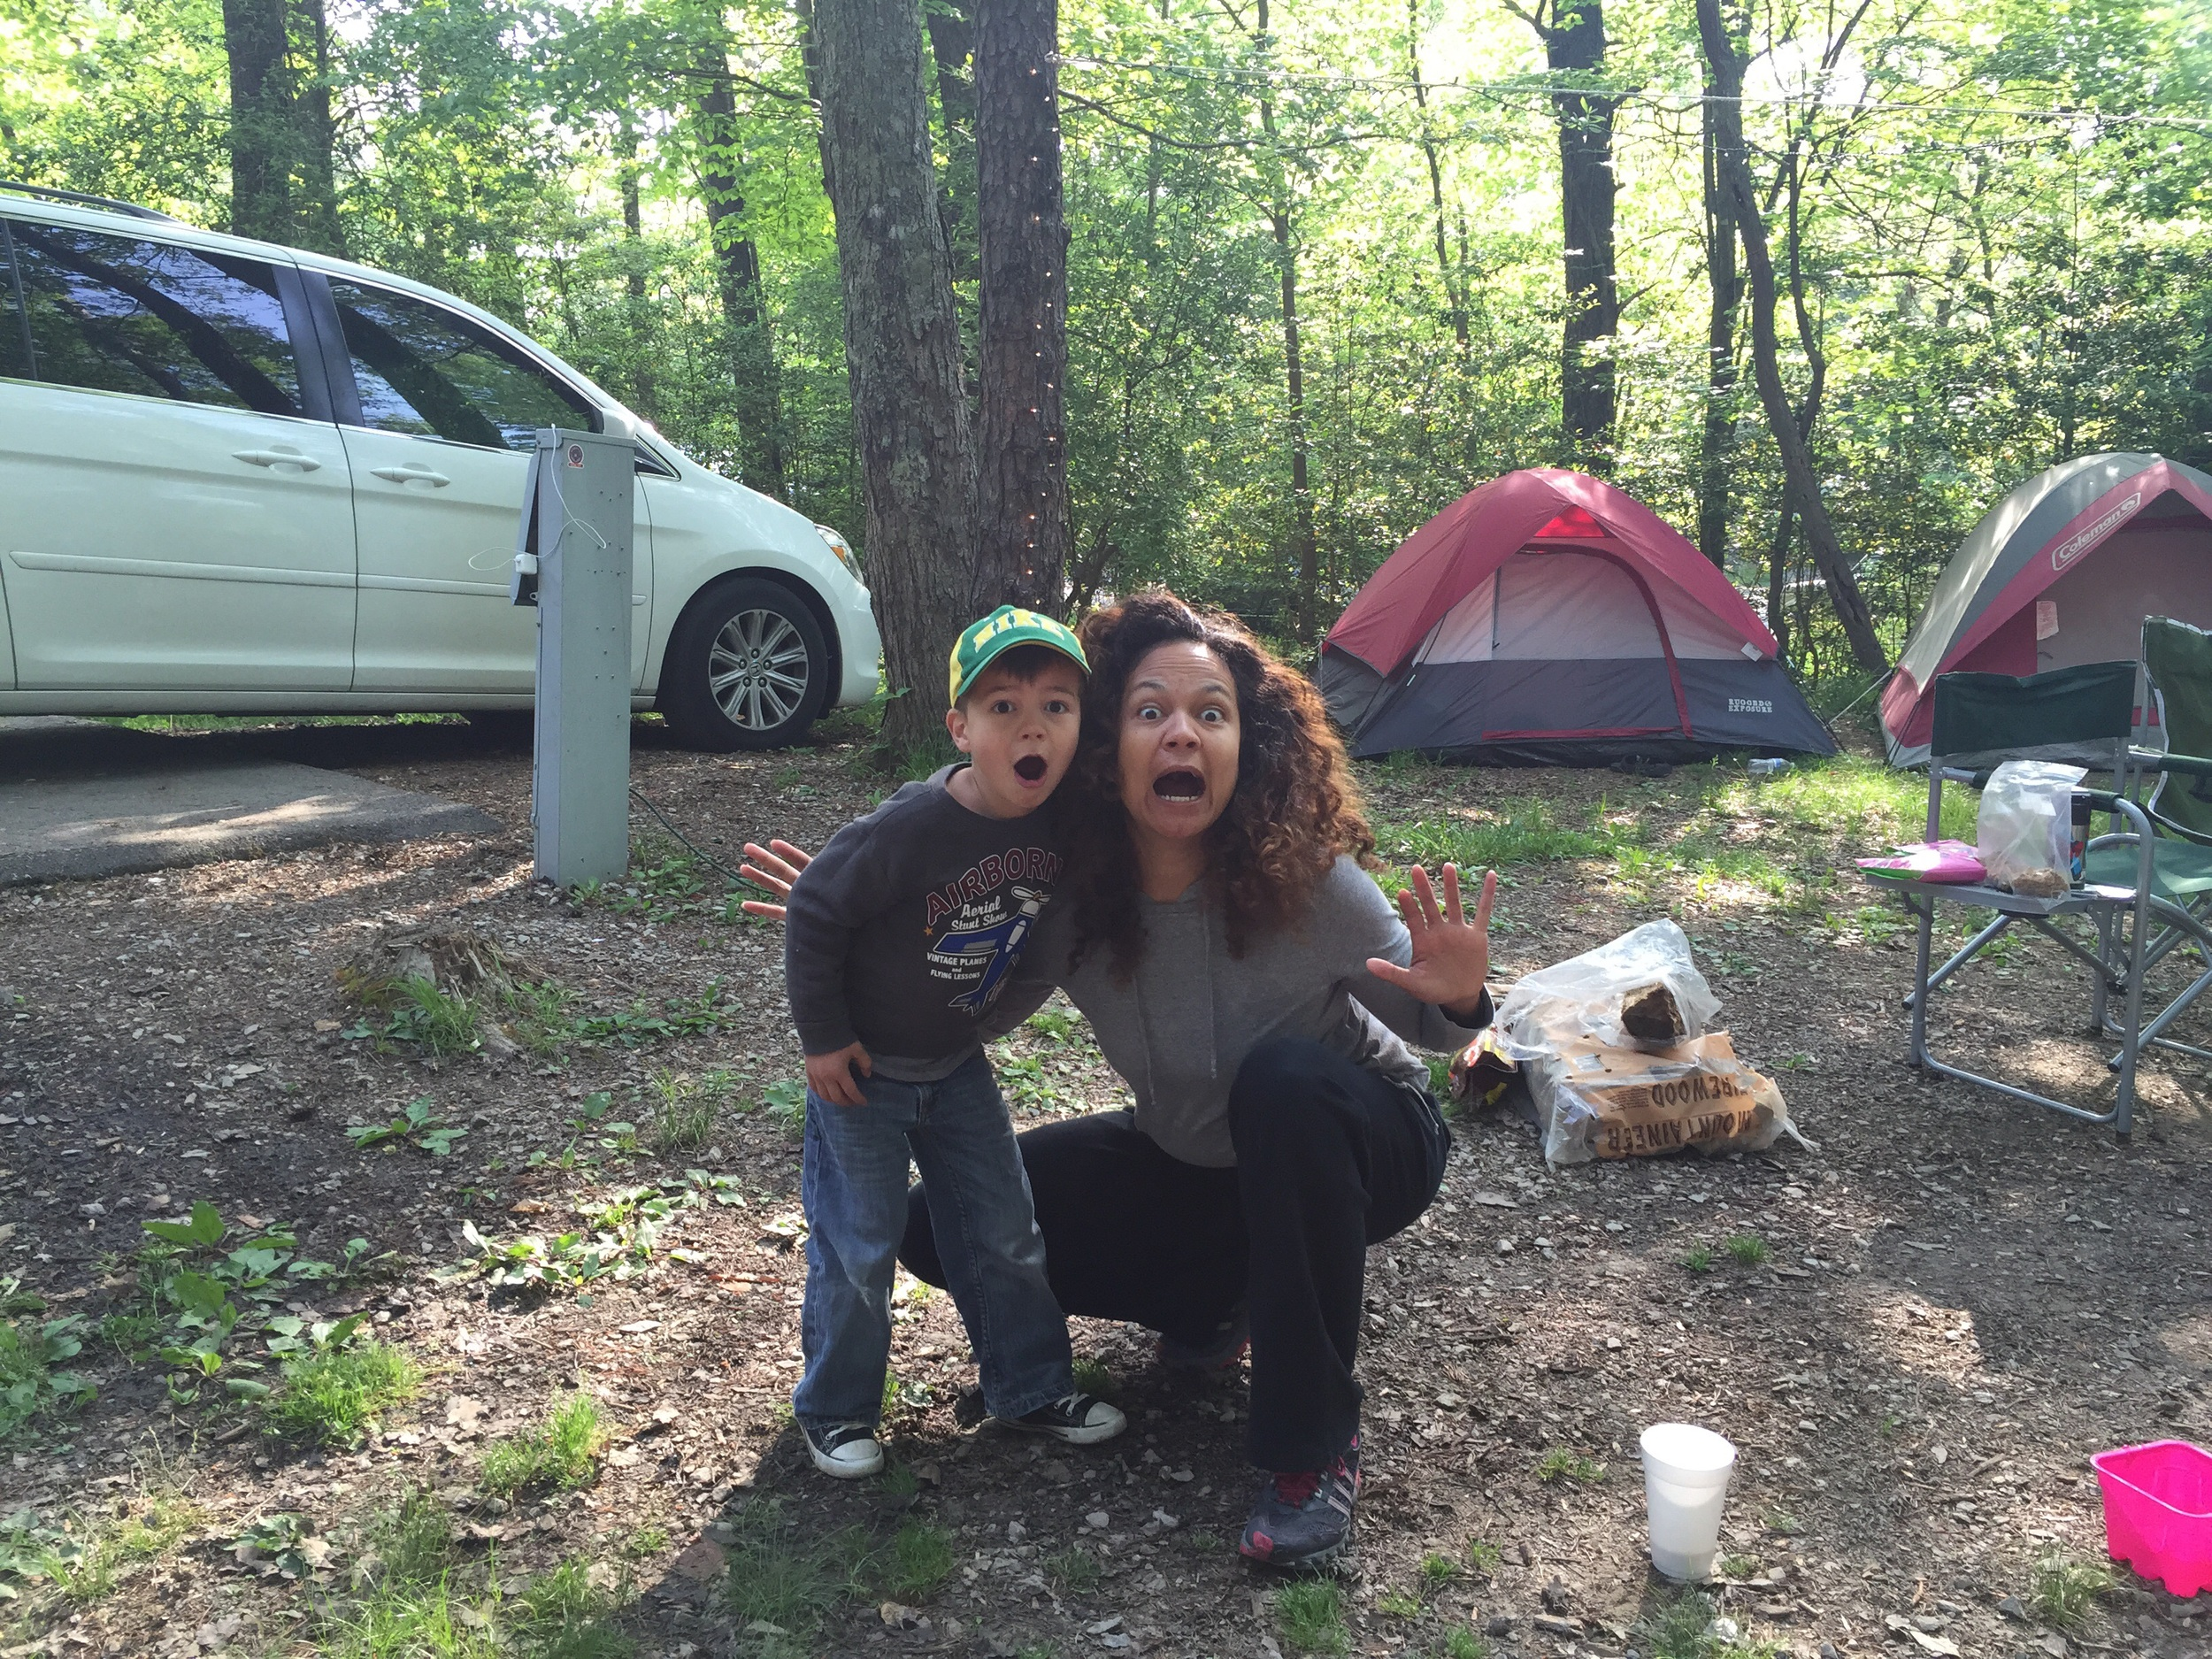 This little guy turned 5 on the camping trip!